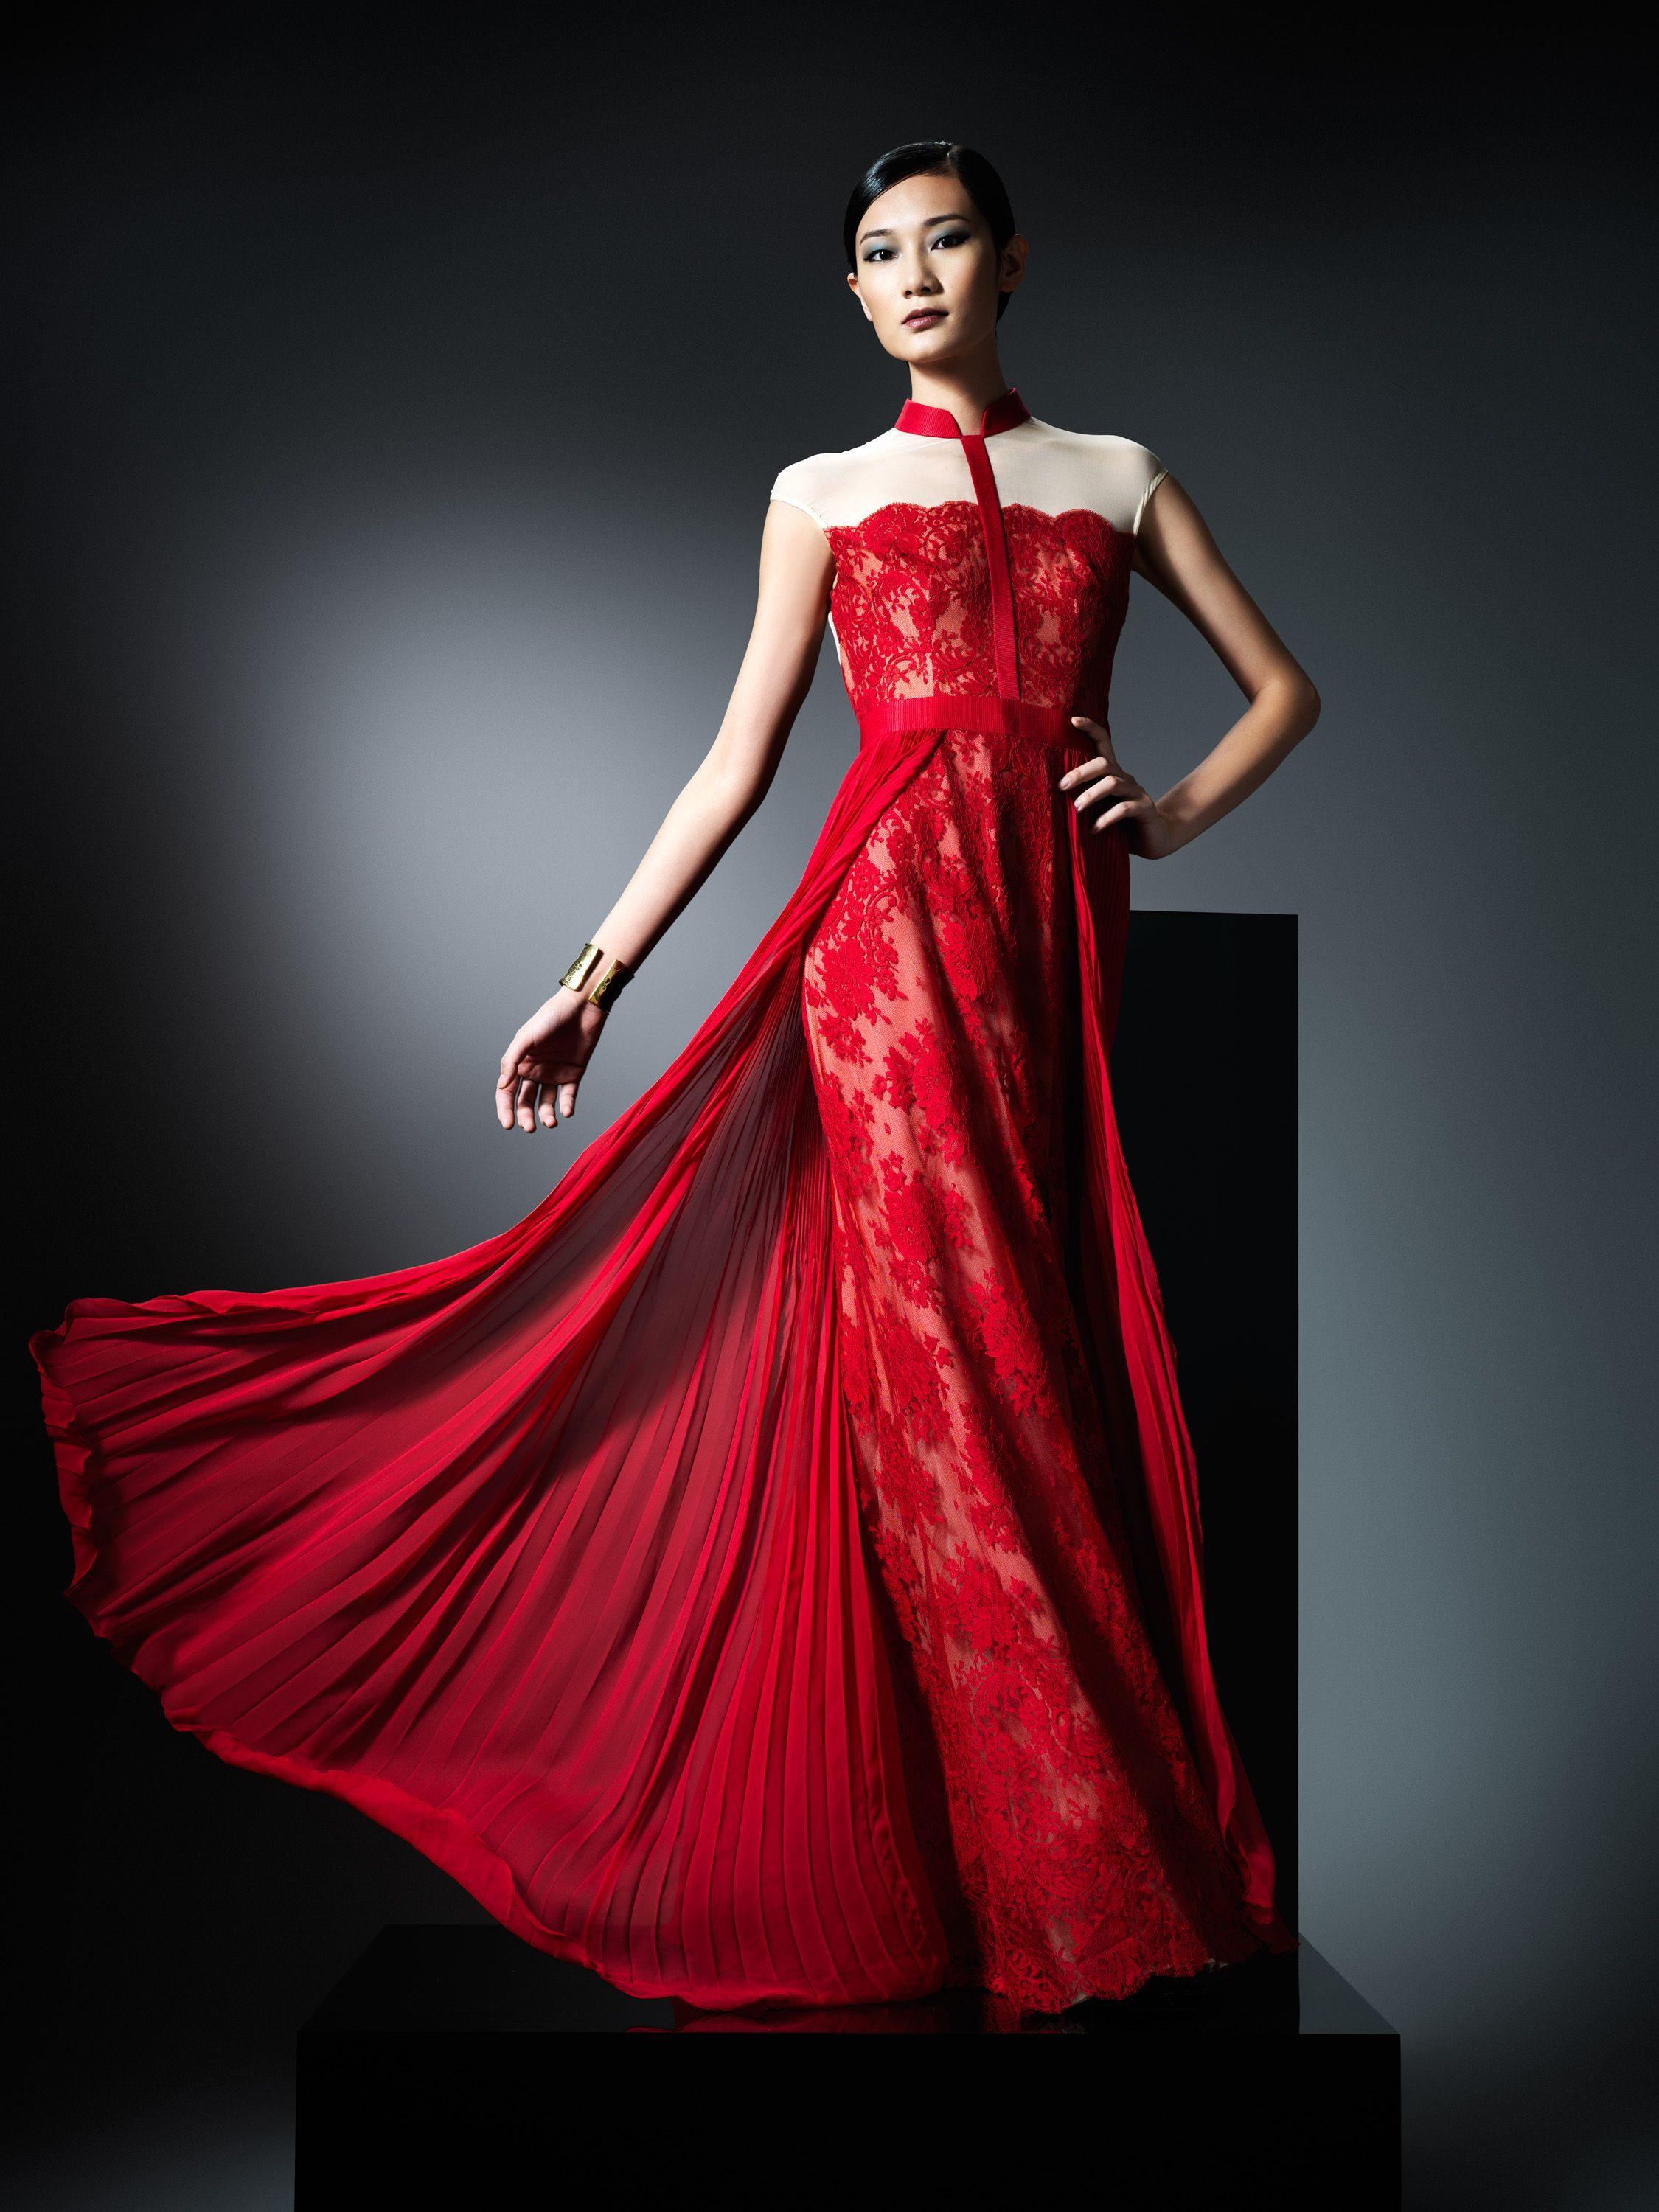 f12b4643d Luxury tailoring from Shanghai Tang | Shopping & Fashion: China's ...